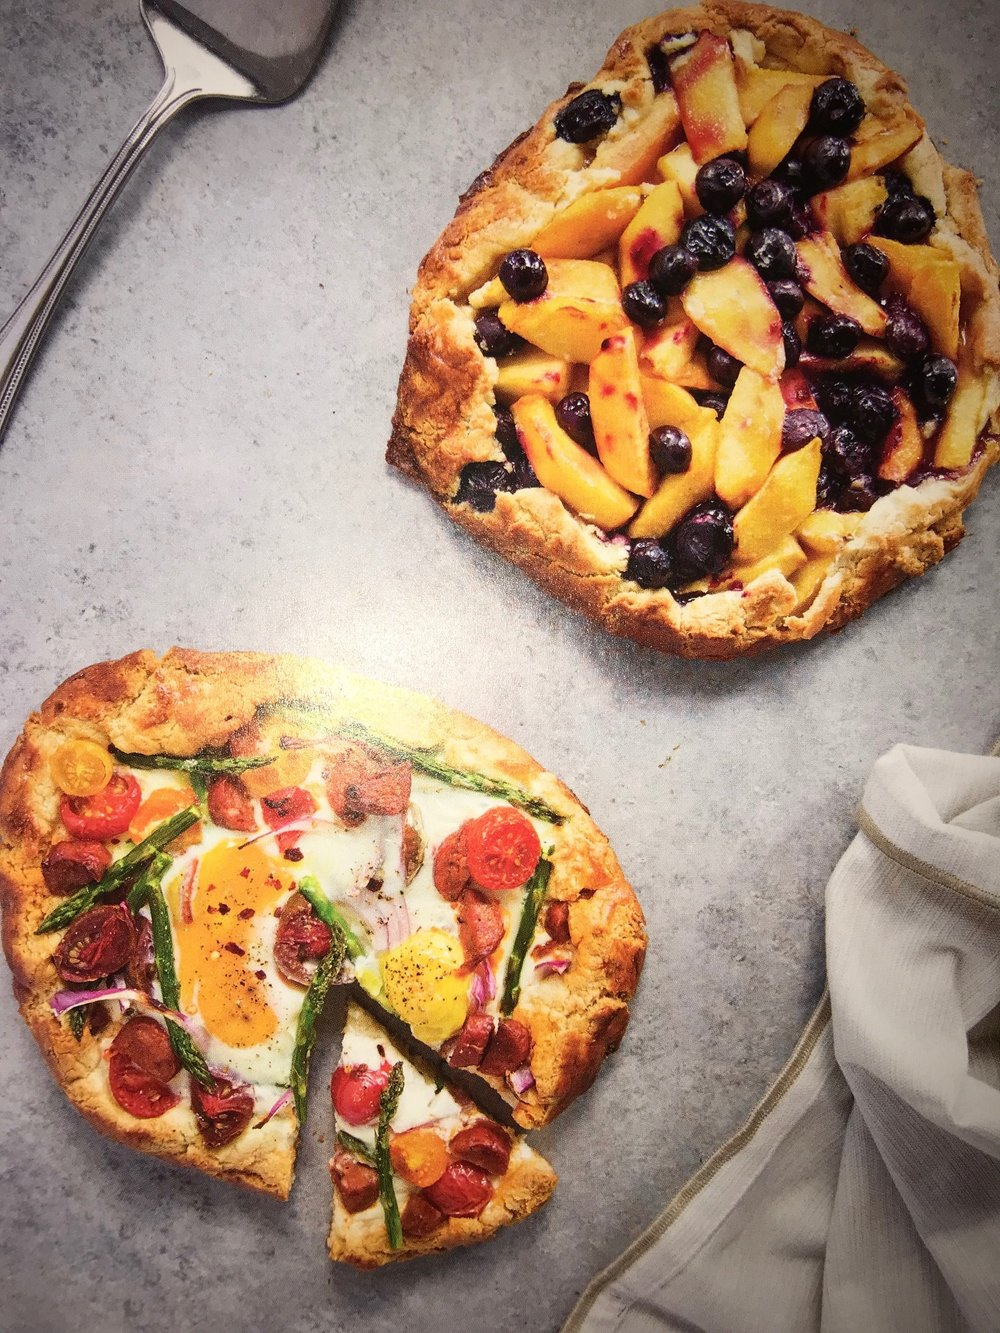 veggie and fruit galettes